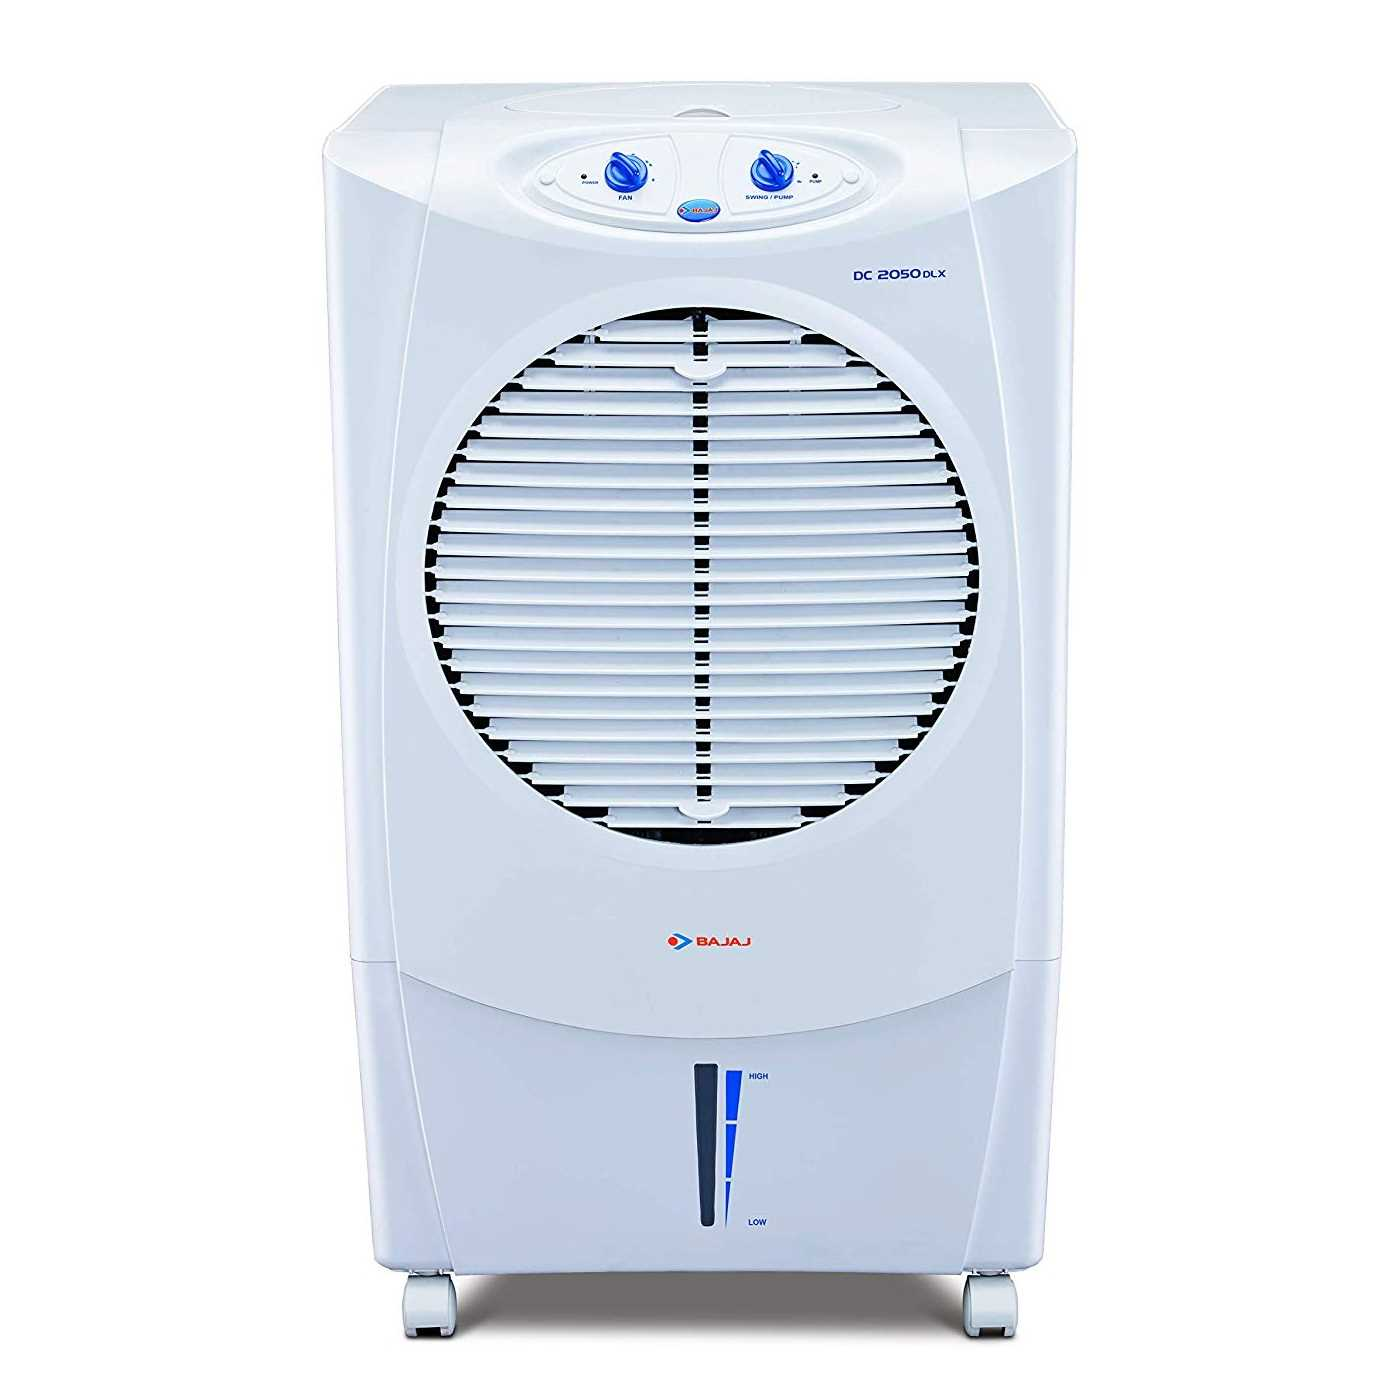 Bajaj DC 2050 DLX 70 Litre Room Air Cooler